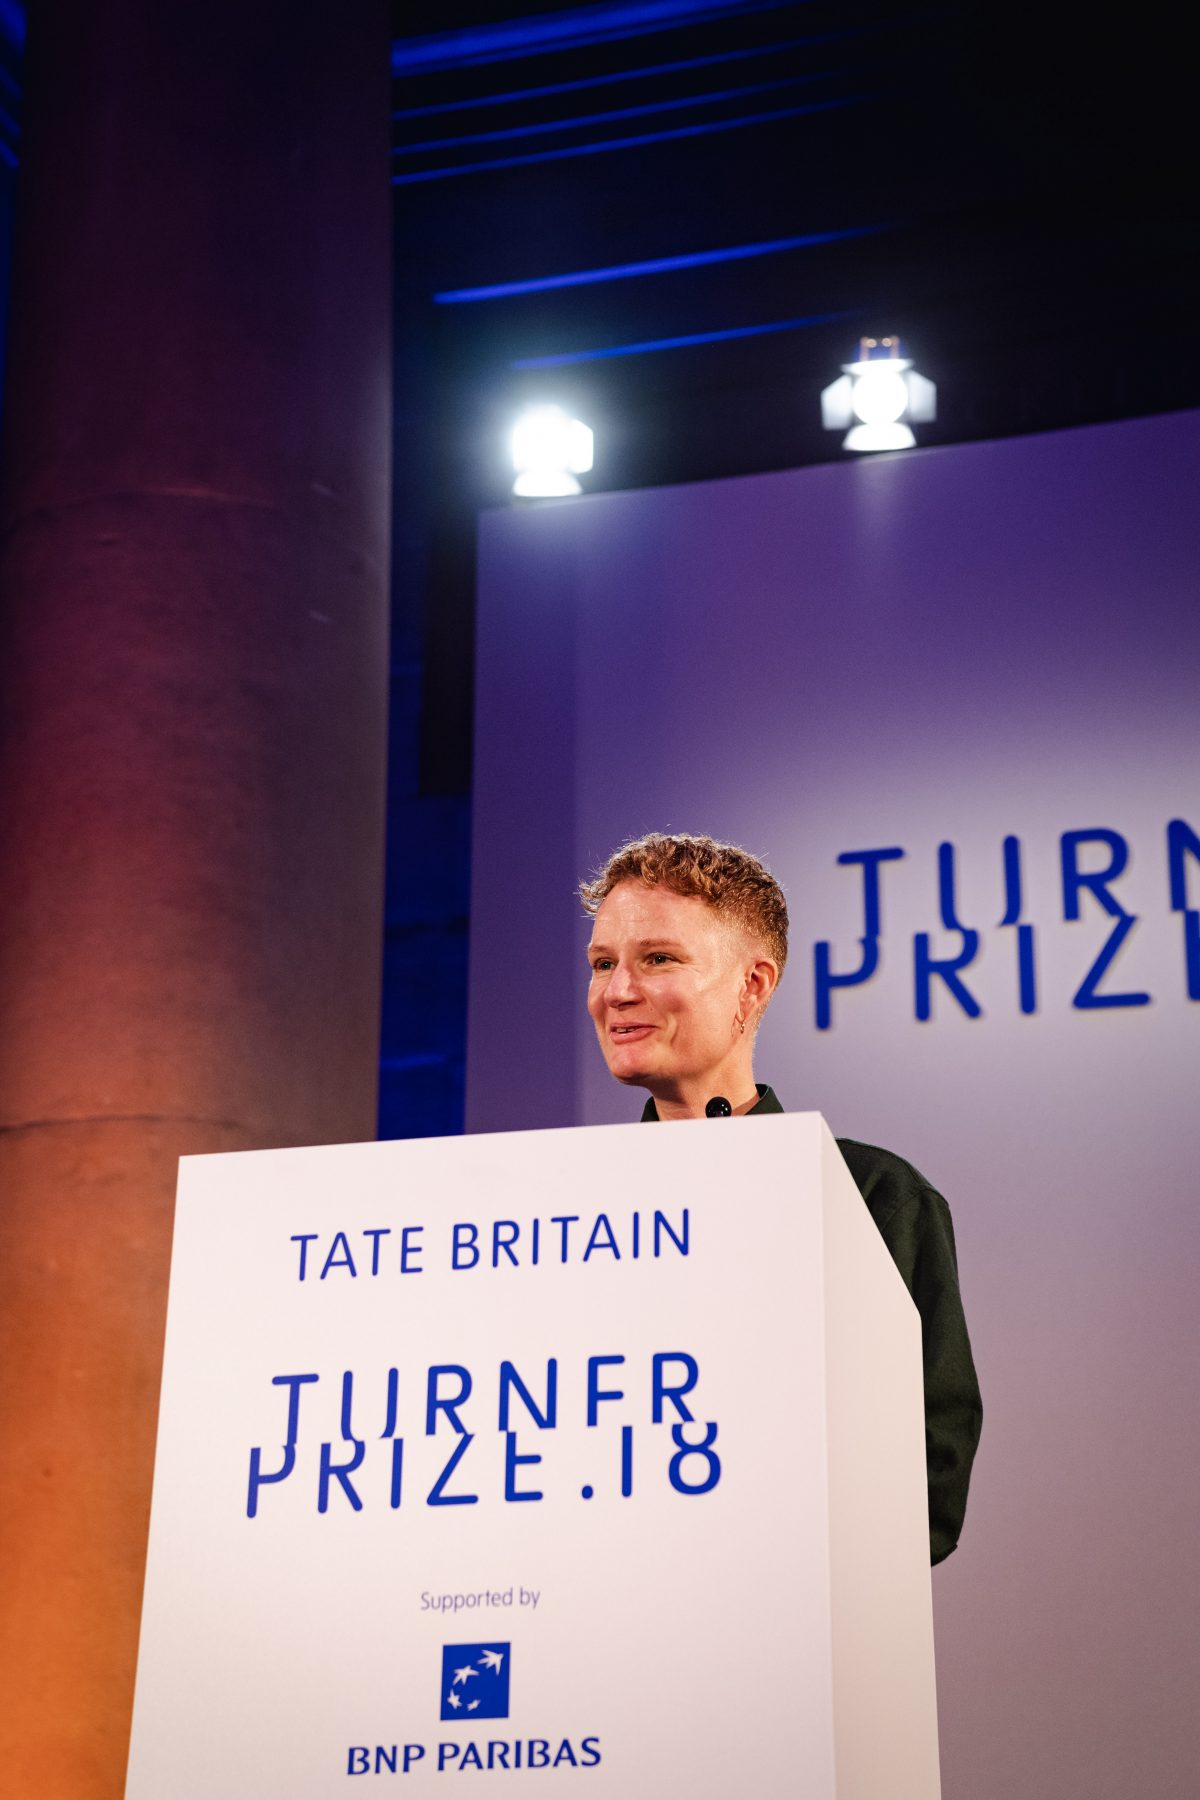 Charlotte Prodger received the Turner Prize